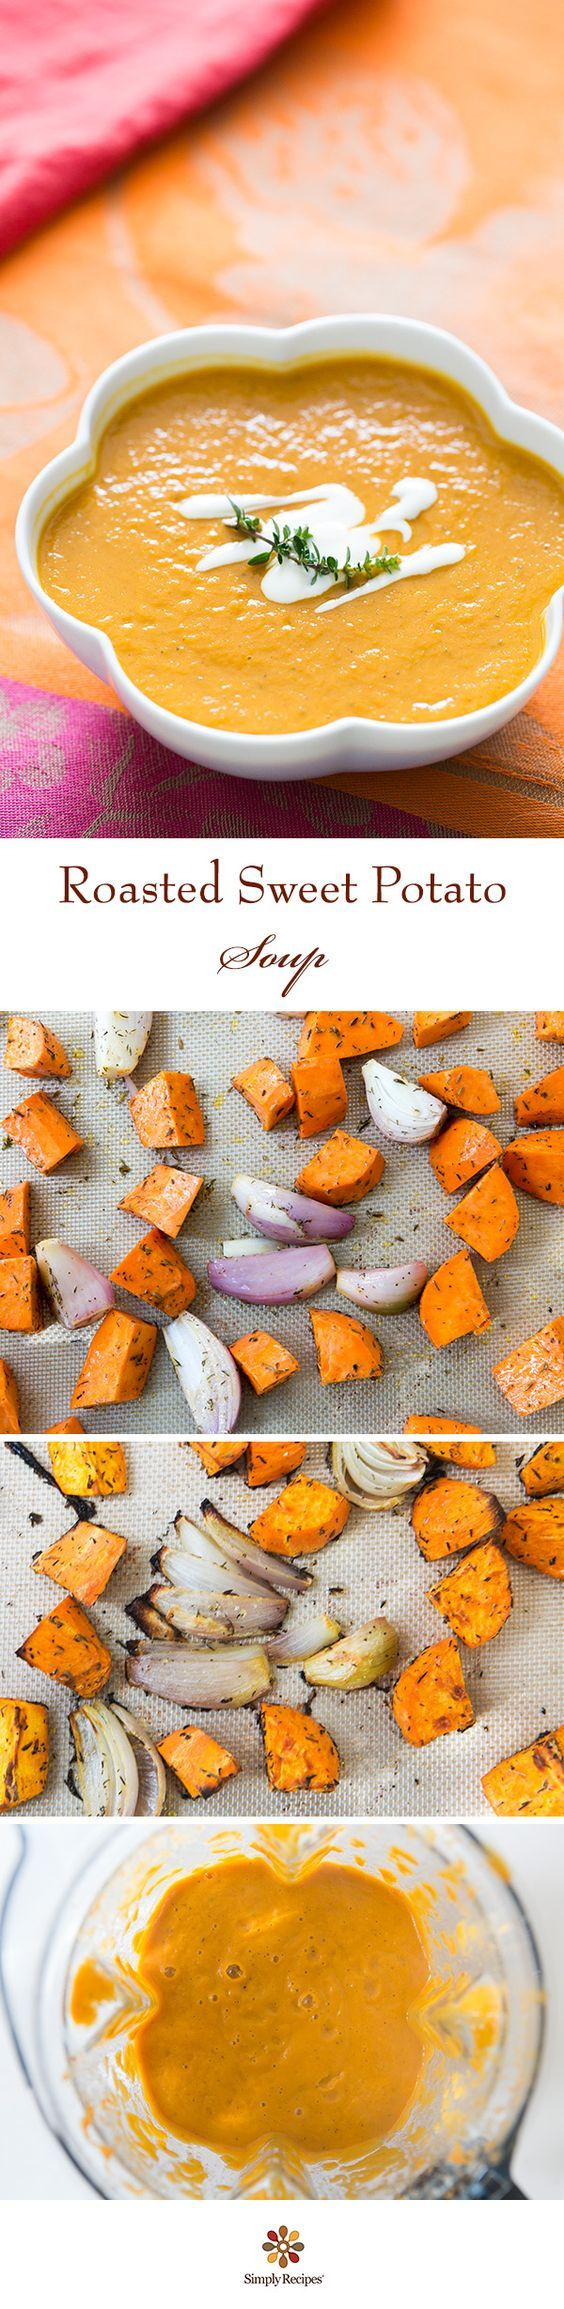 EASY roasted sweet potato soup! With shallots, cumin, thyme, and stock. Swirl in a little sour cream or yogurt to serve. ~ SimplyRecipes.com